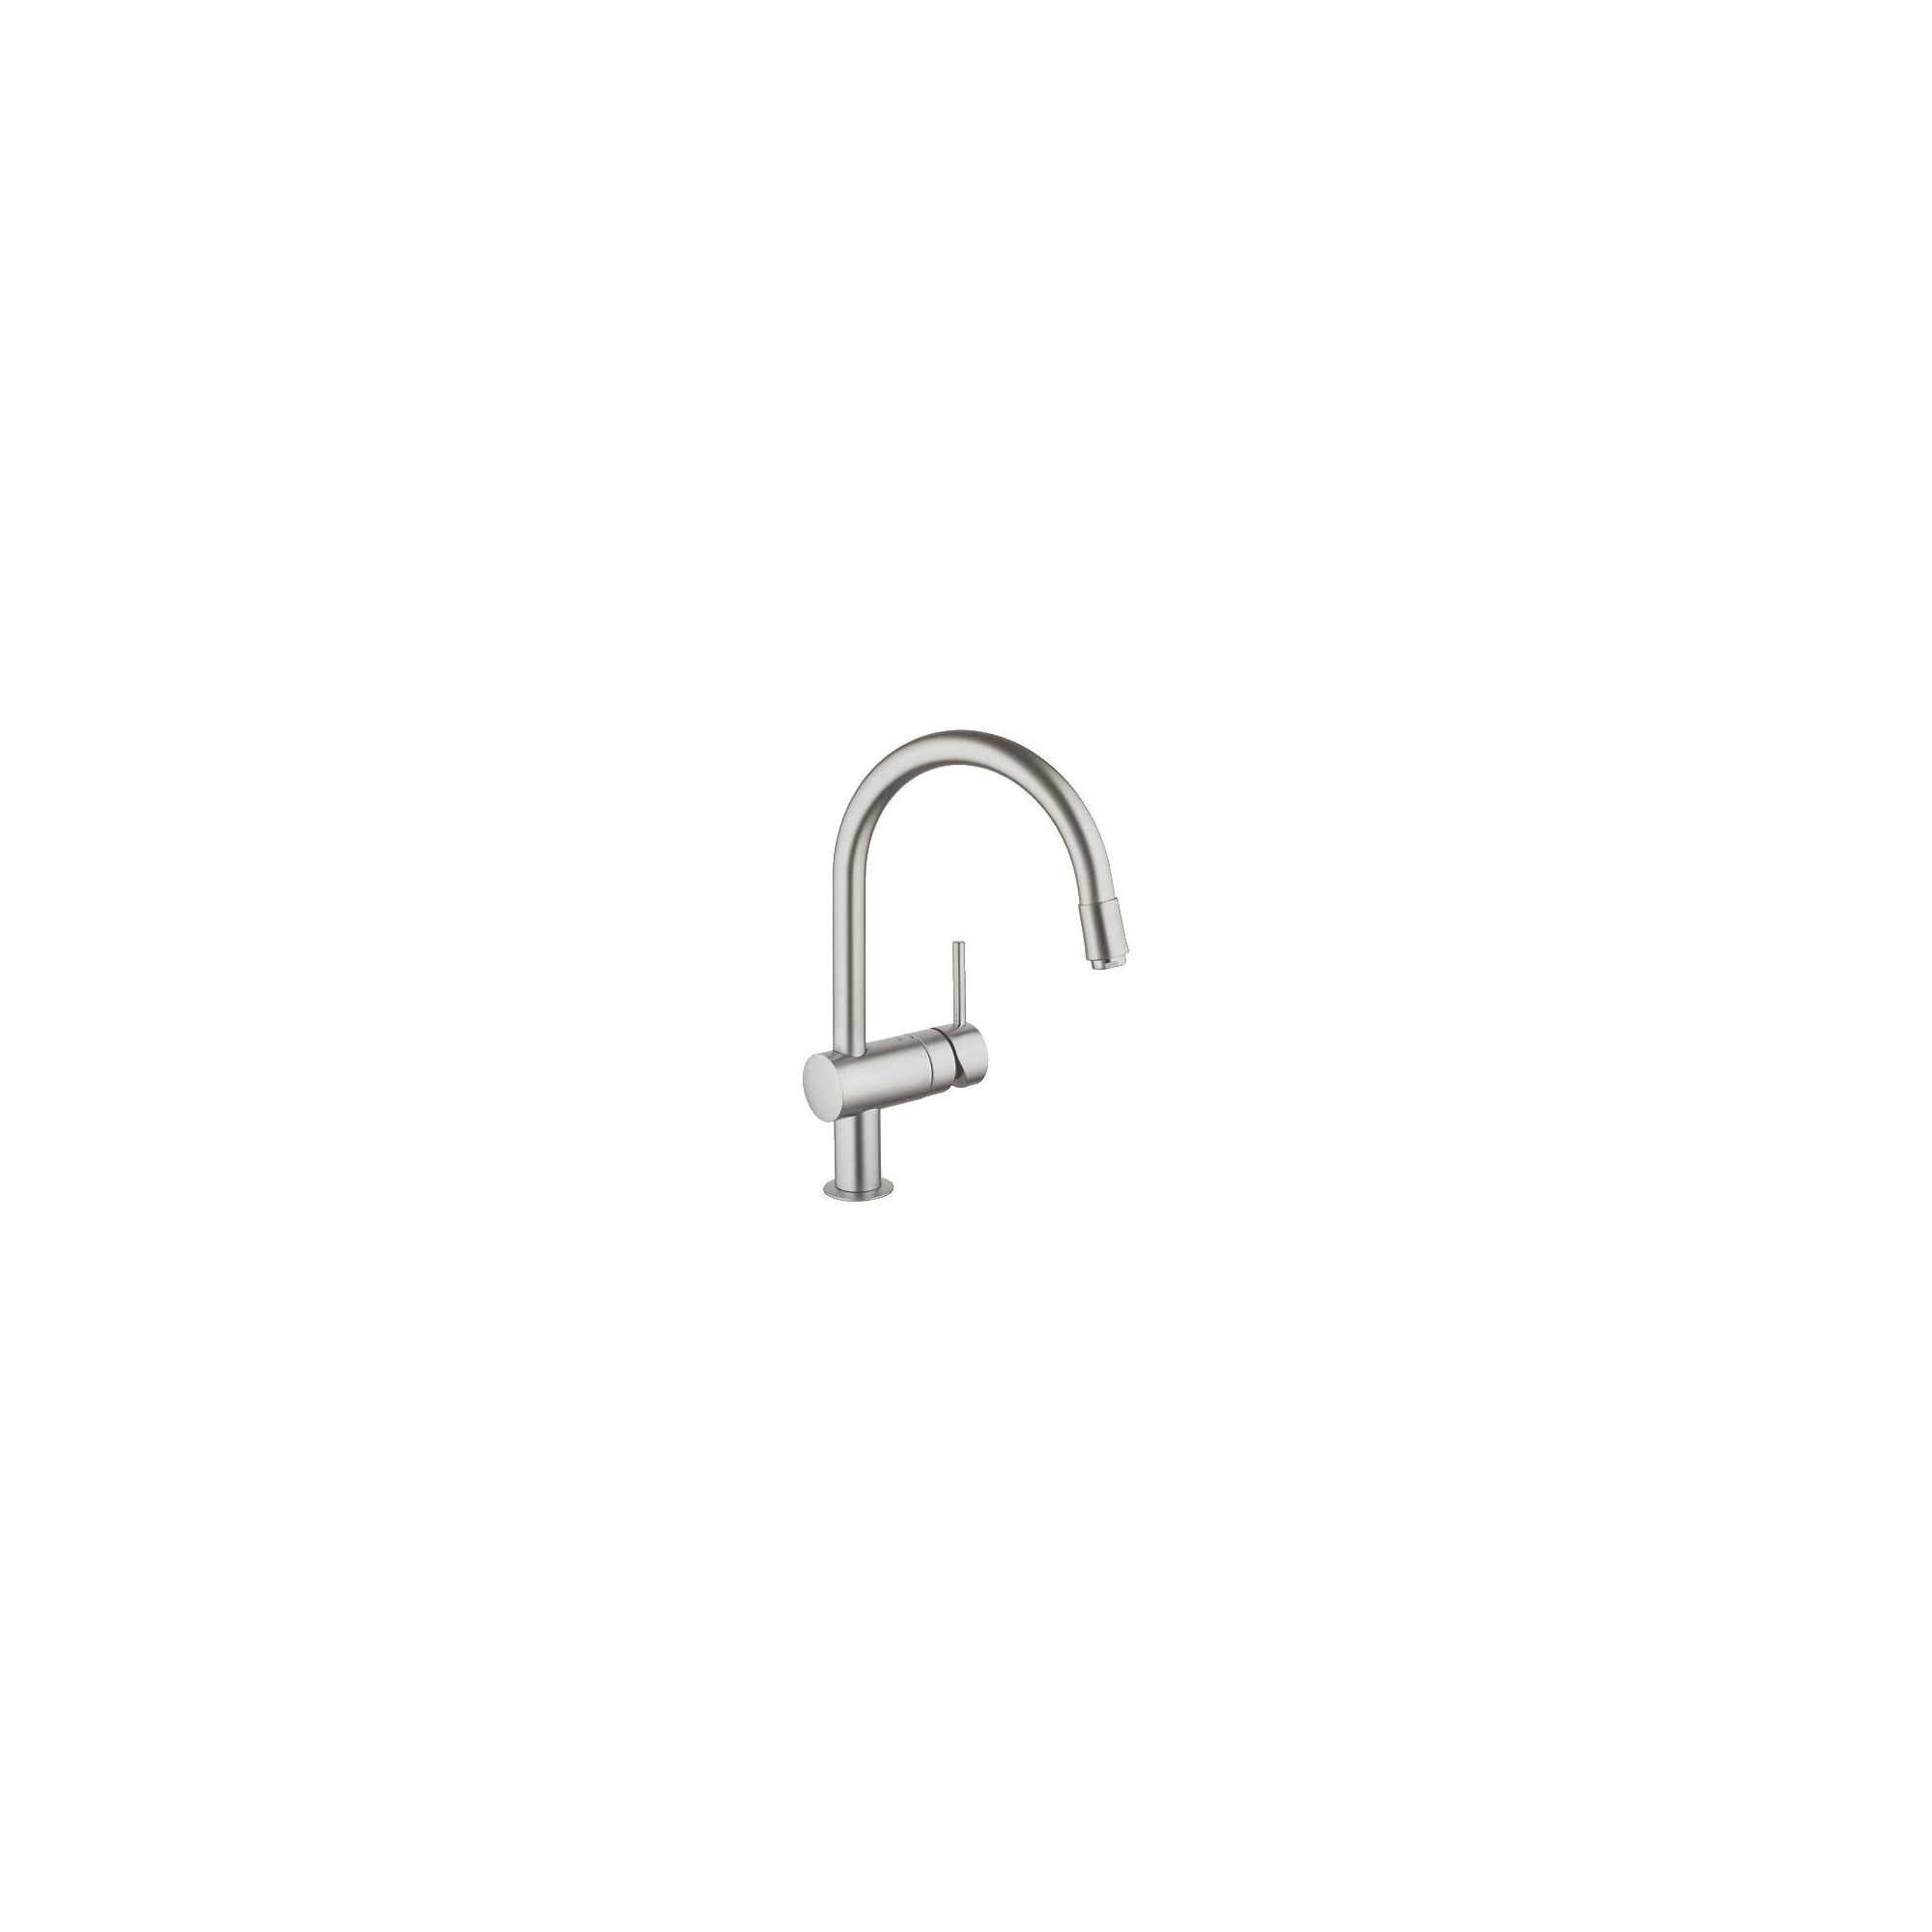 Grohe Minta Mono Sink Mixer Tap, Pull-Out C-Spout, Single Handle, SuperSteel at Tesco Direct